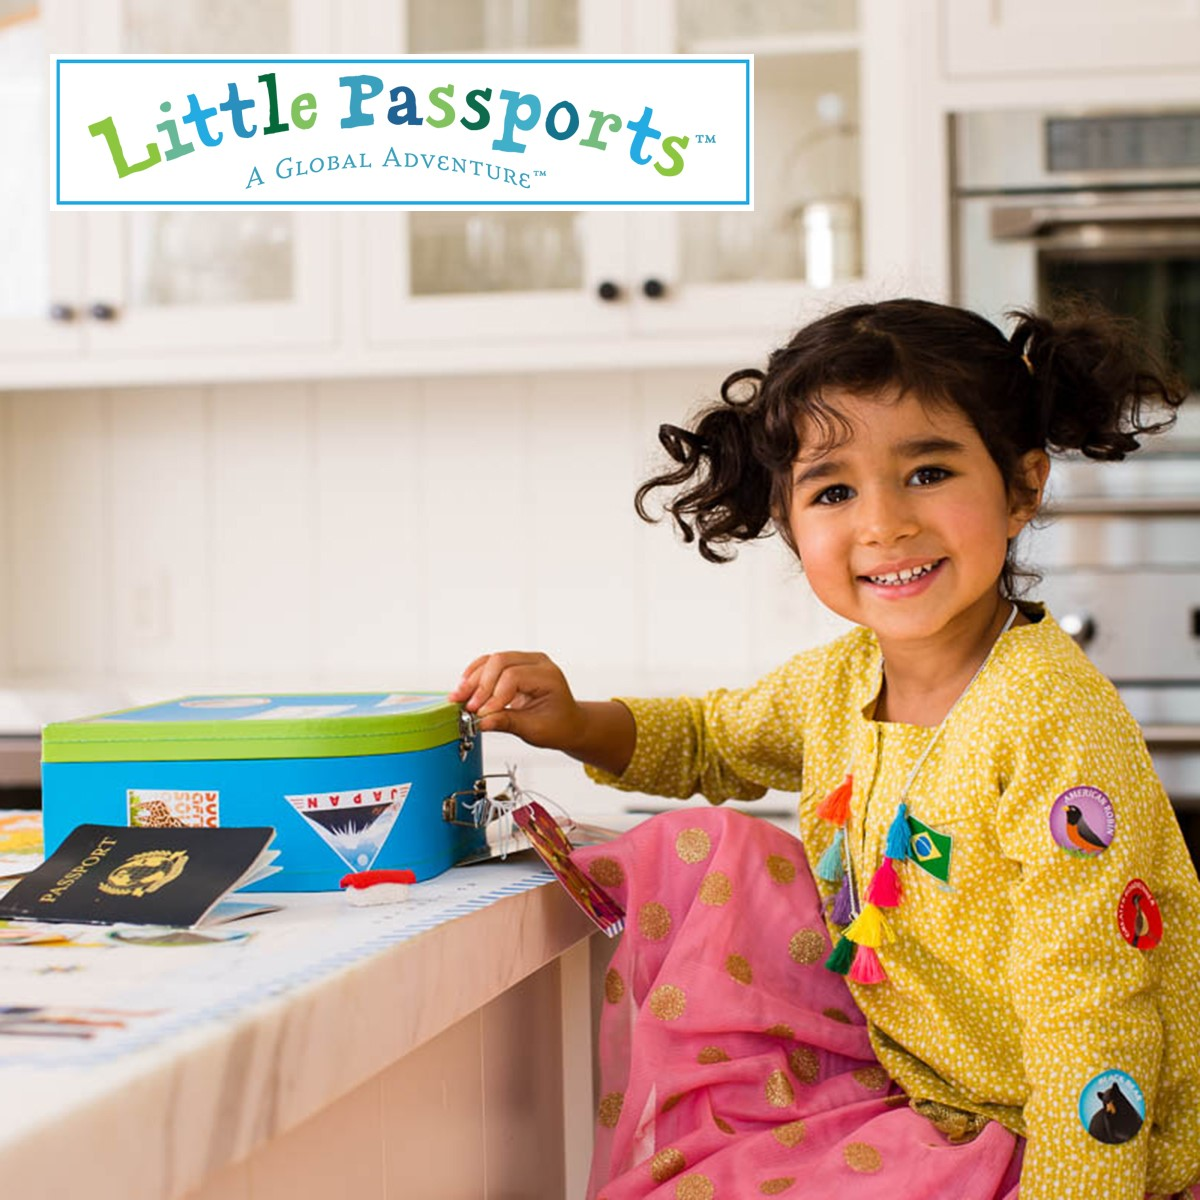 Little Passports - A Global Adventure